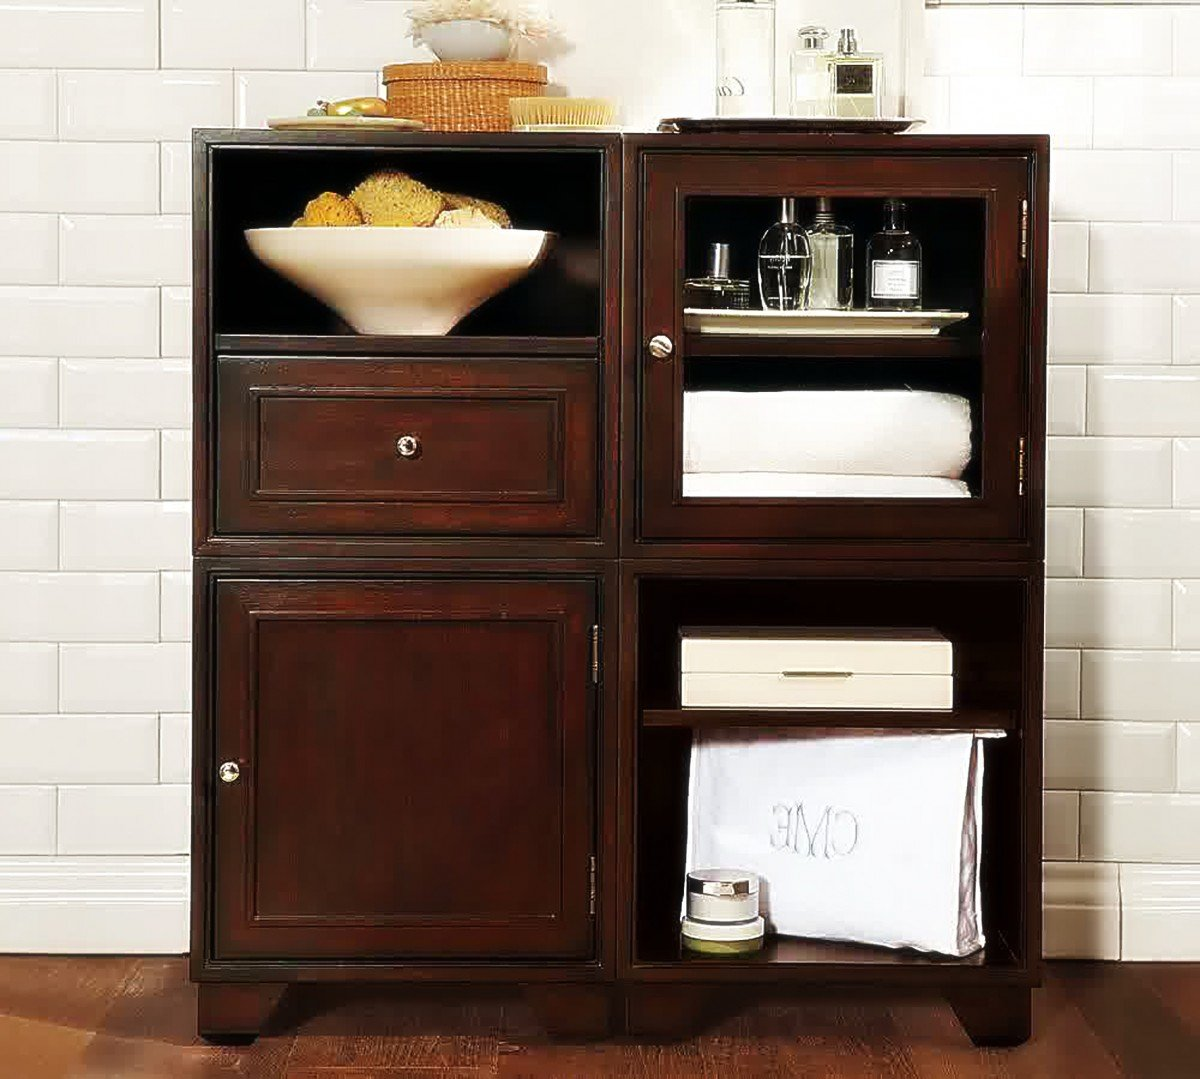 Bathroom storage cabinets floor home furniture design for Bathroom storage cabinets floor